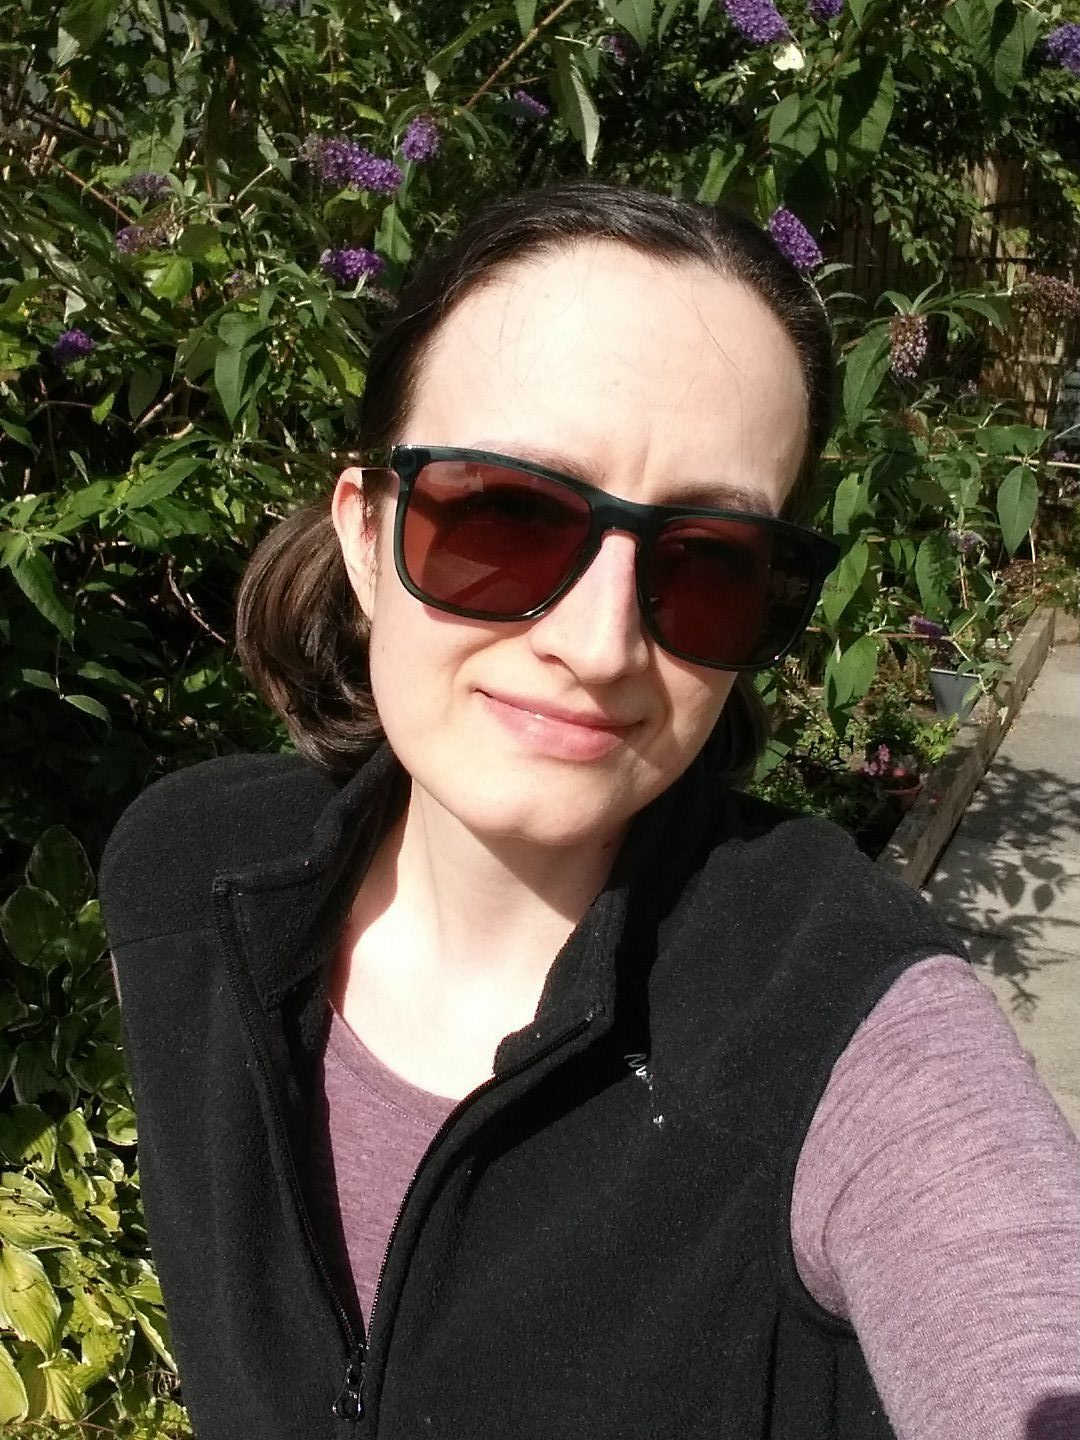 im walking in the garden, wearing sunglasses and a purple top.